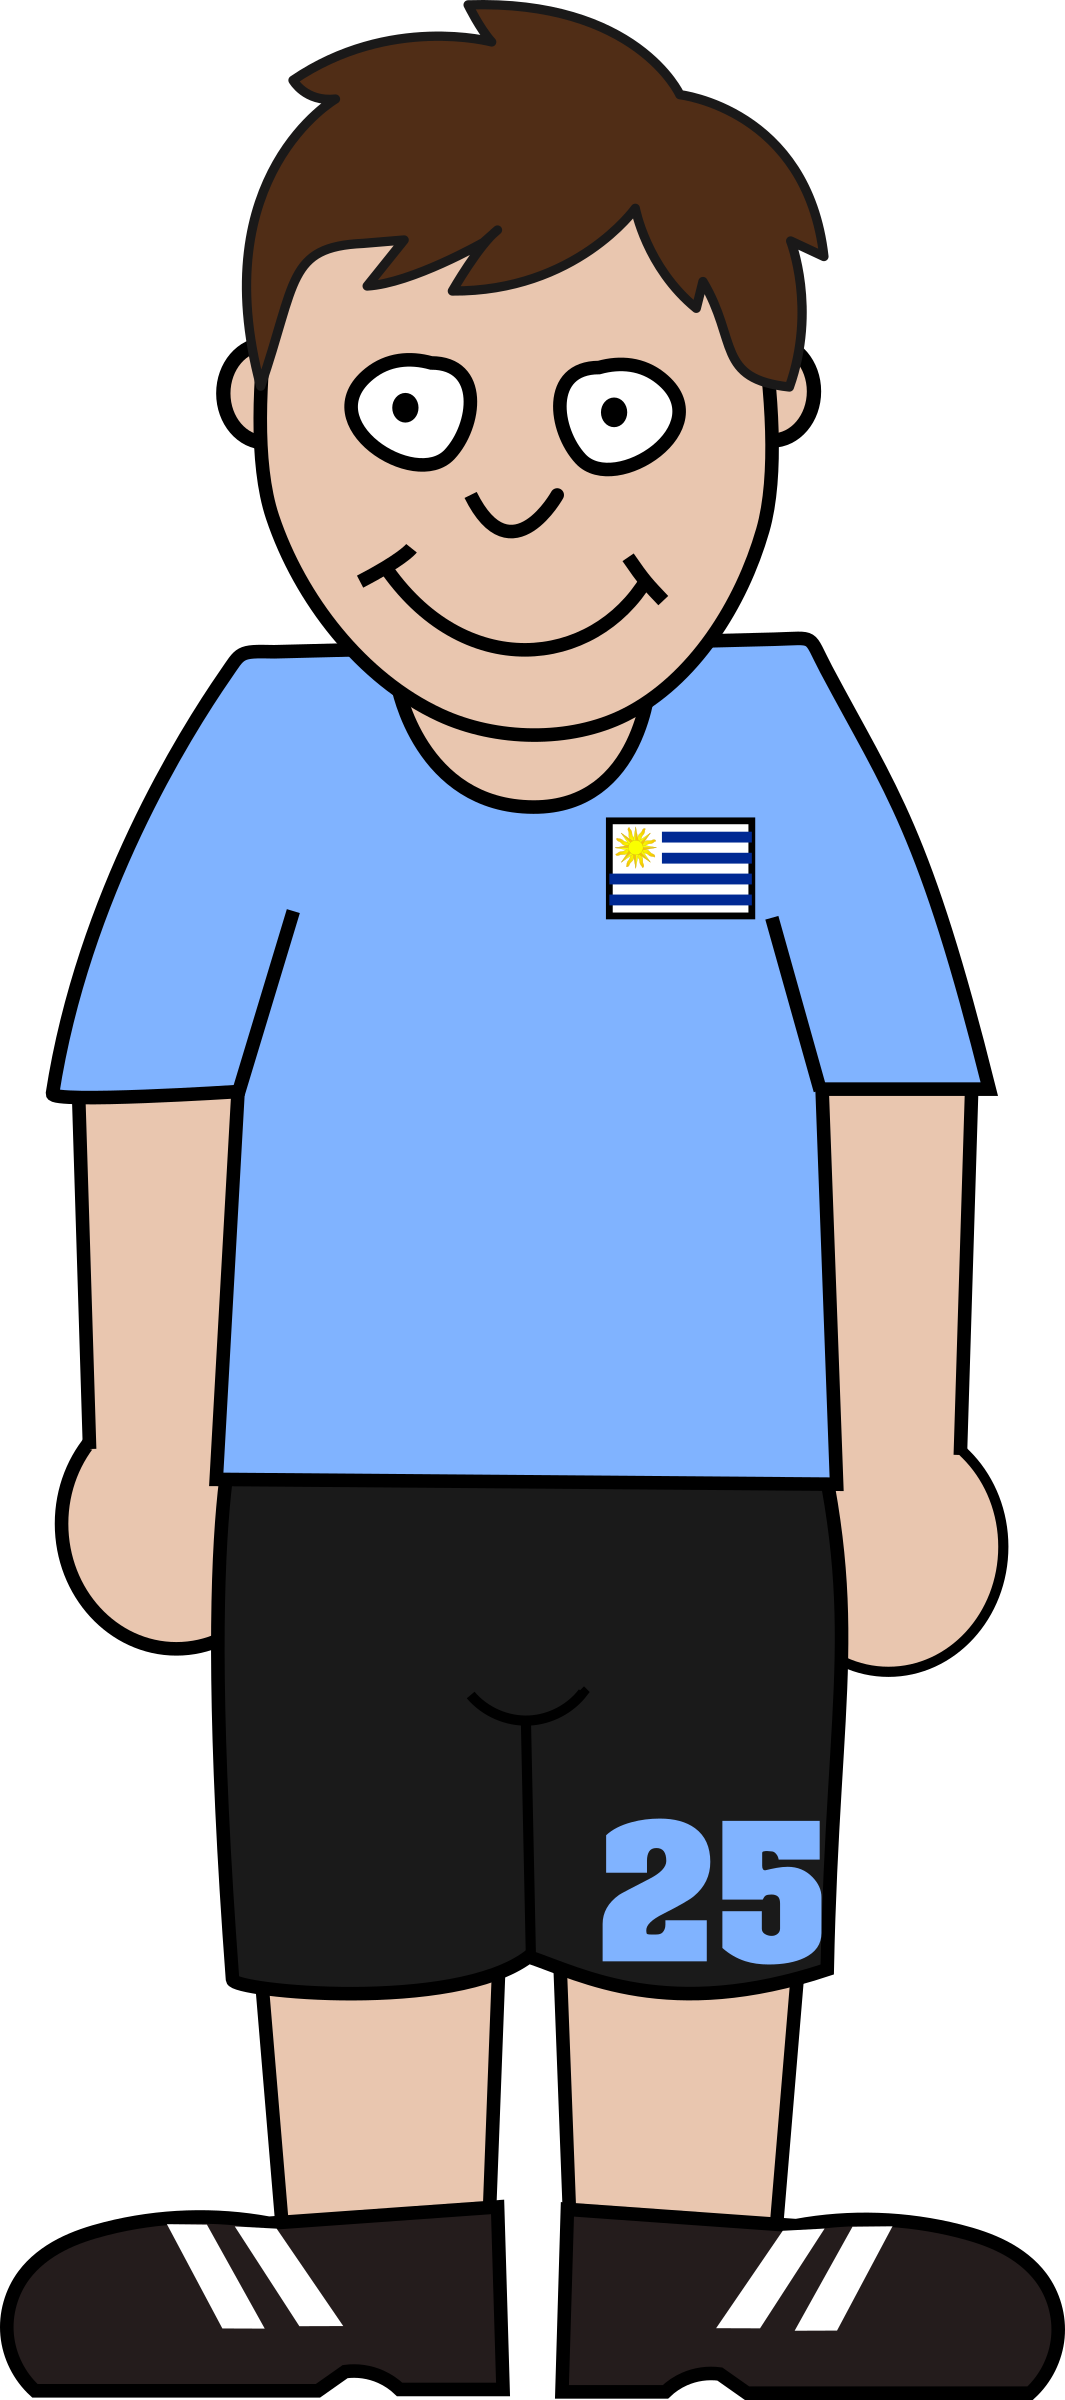 Football player uruguay by Bingenberg